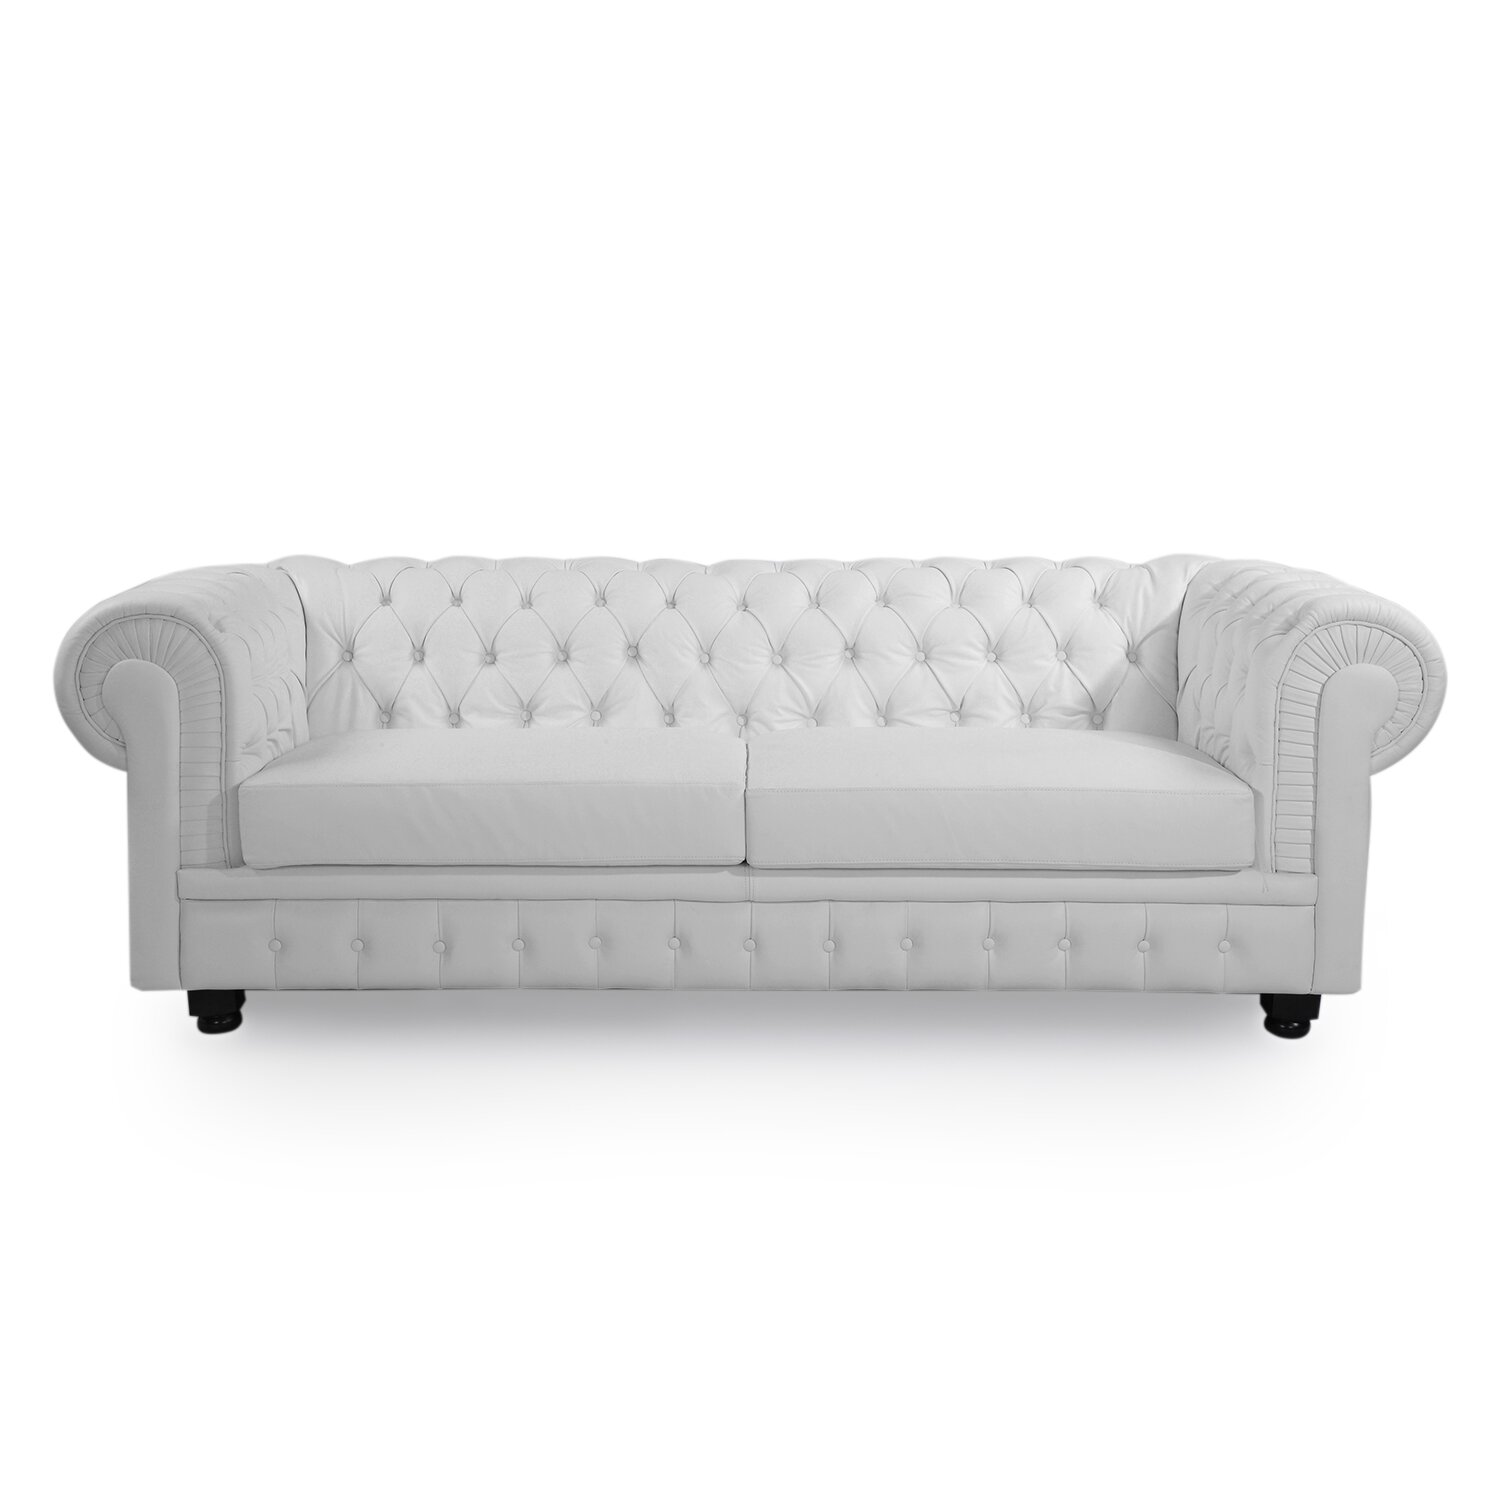 Kardiel chesterfield modern classic sofa wayfair for Sofa modern classic